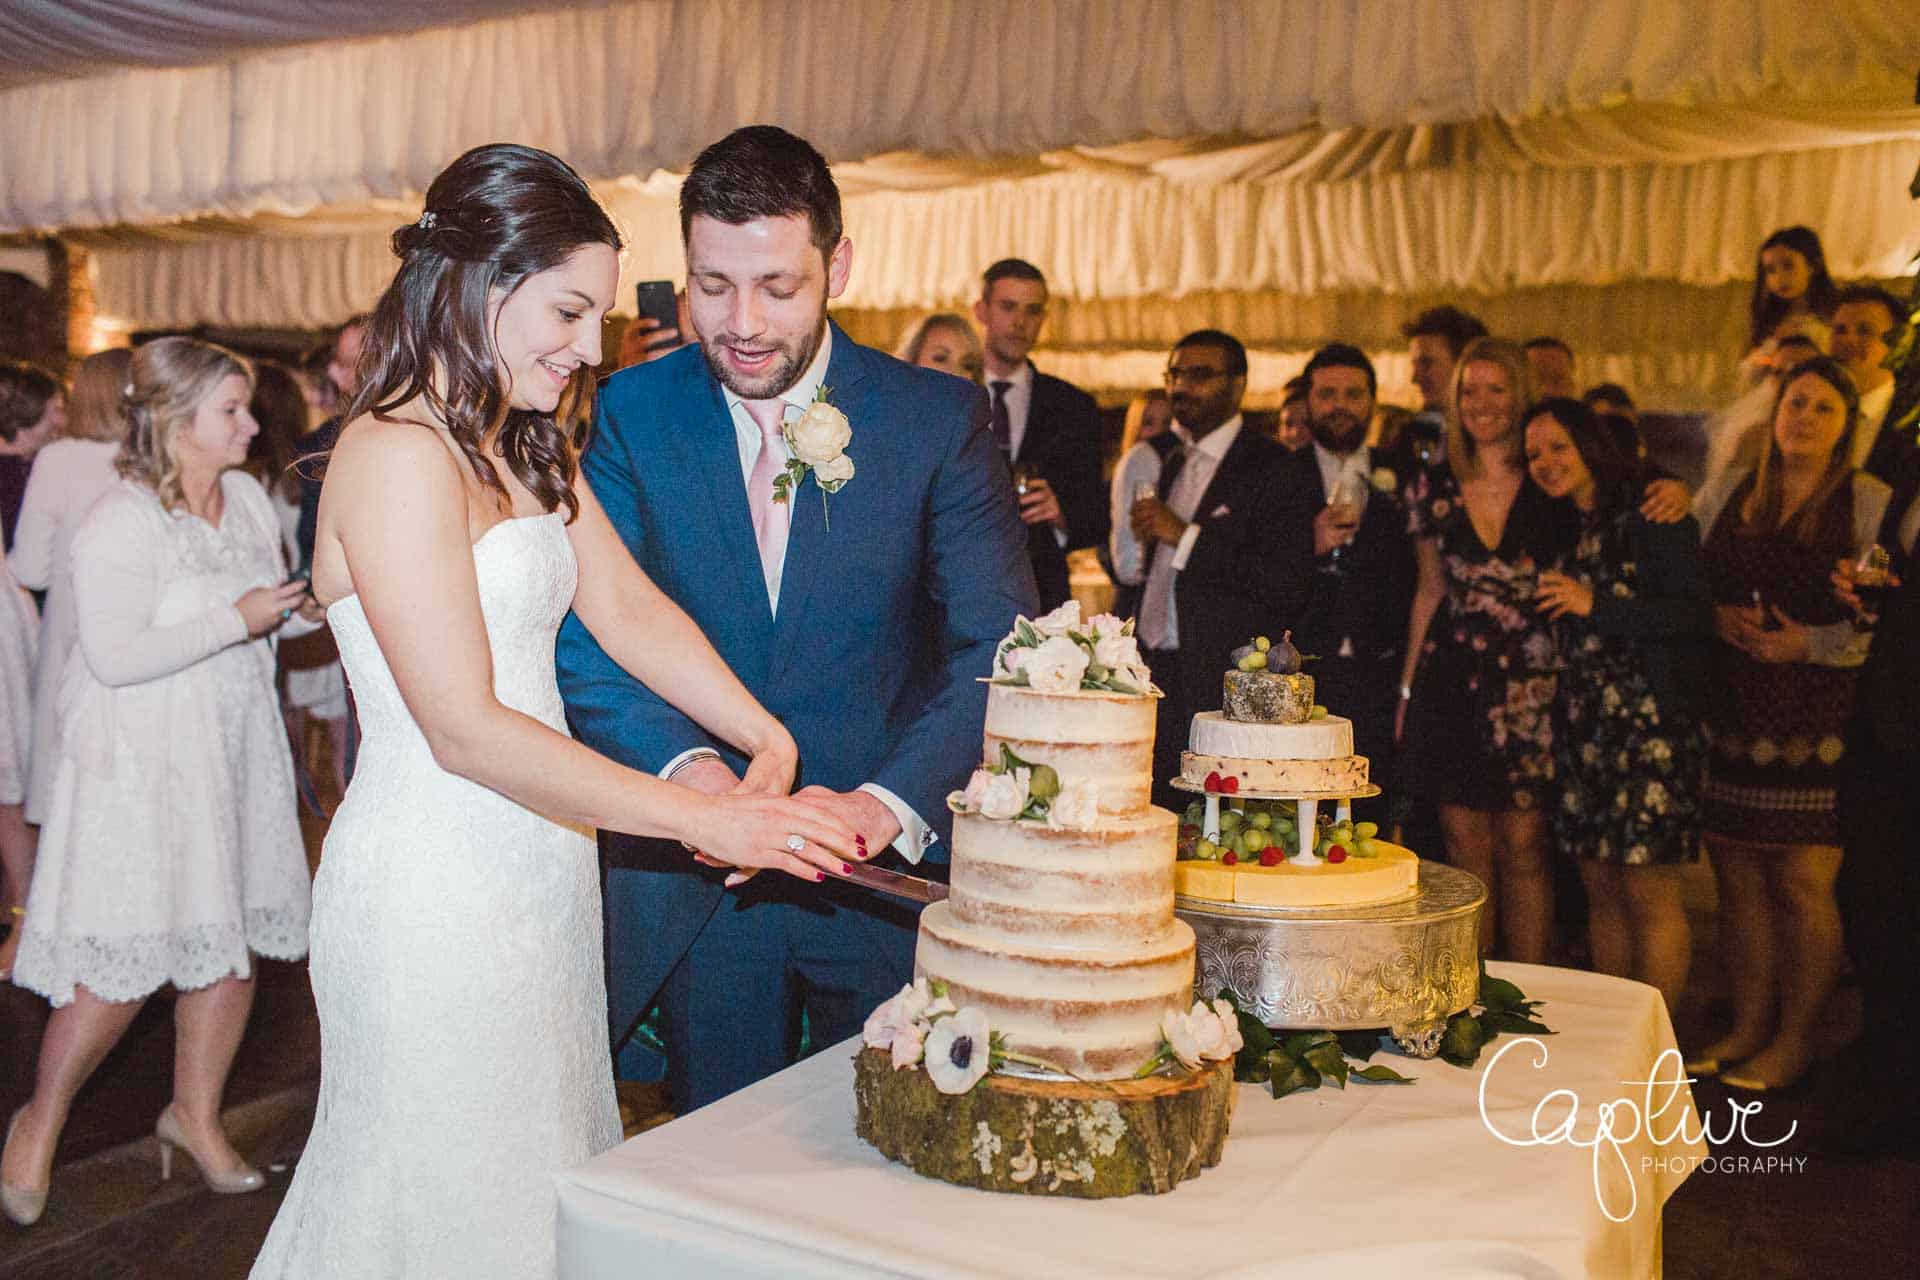 Northbrook Park wedding in Surrey photography by Captive Photography